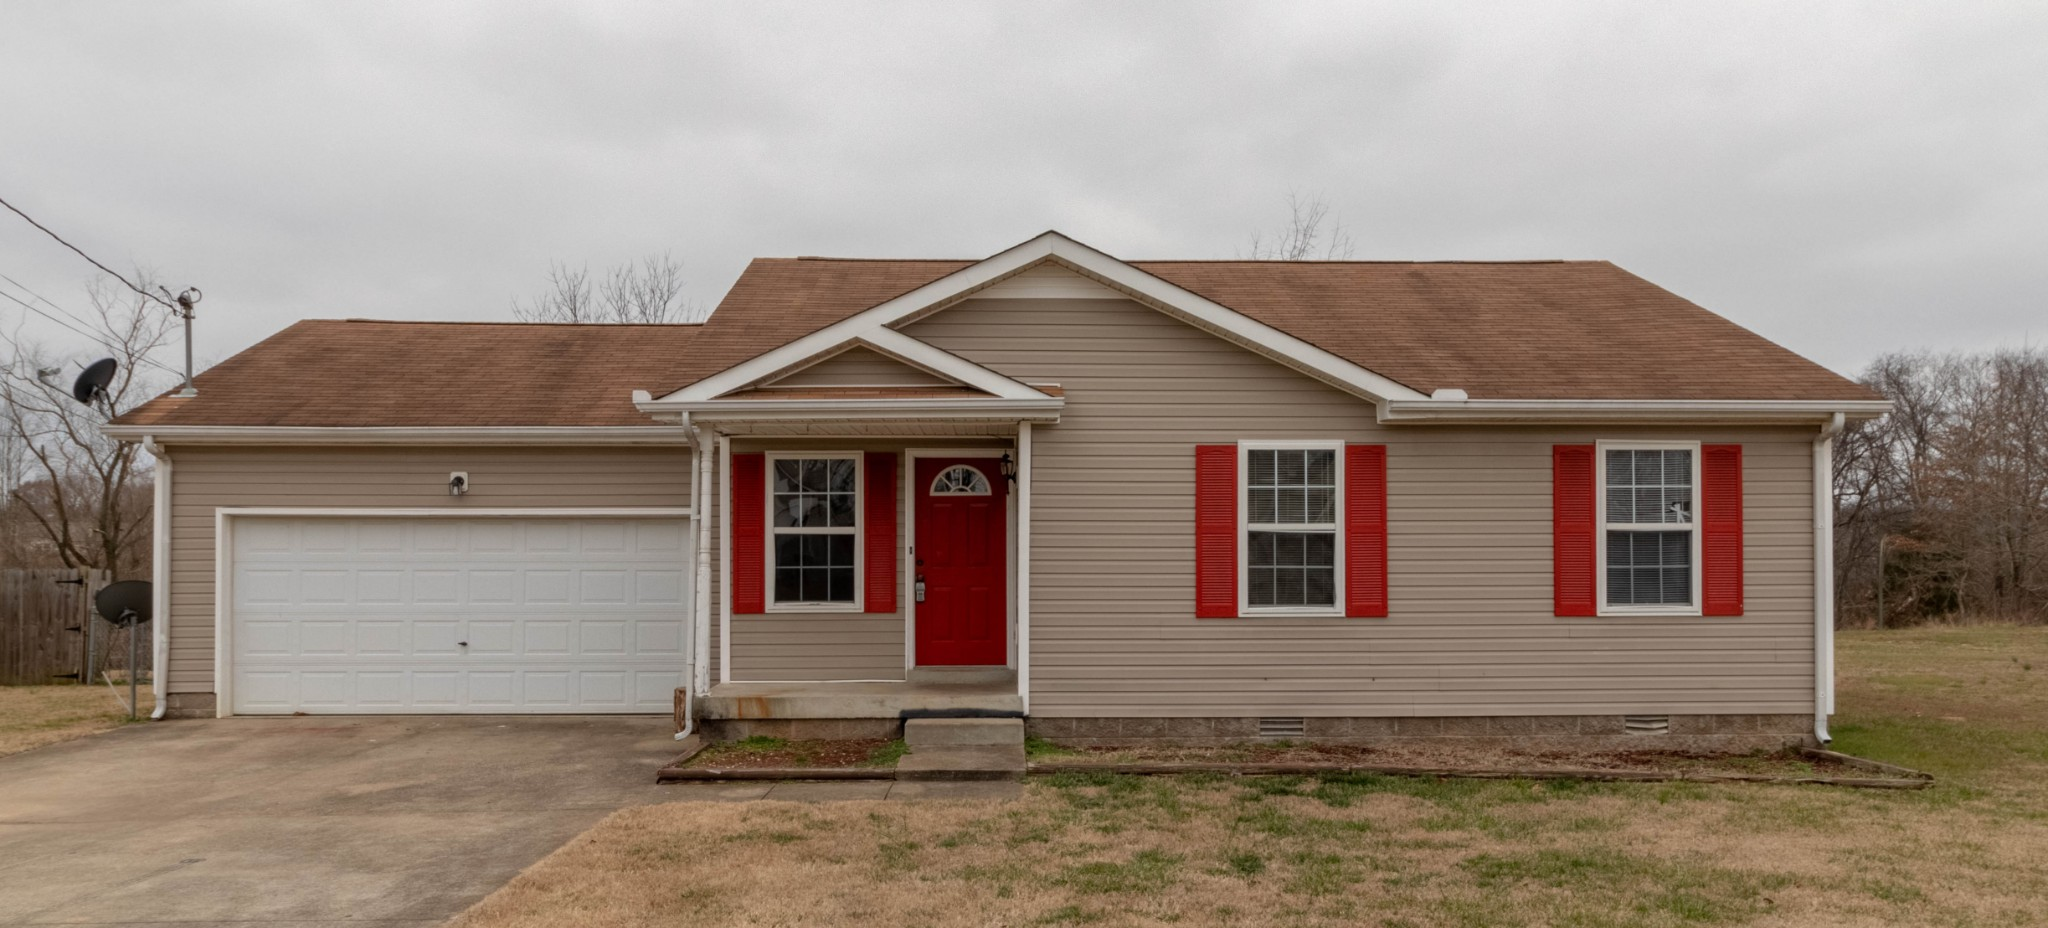 284 Golden Pond Ave Property Photo - Oak Grove, KY real estate listing